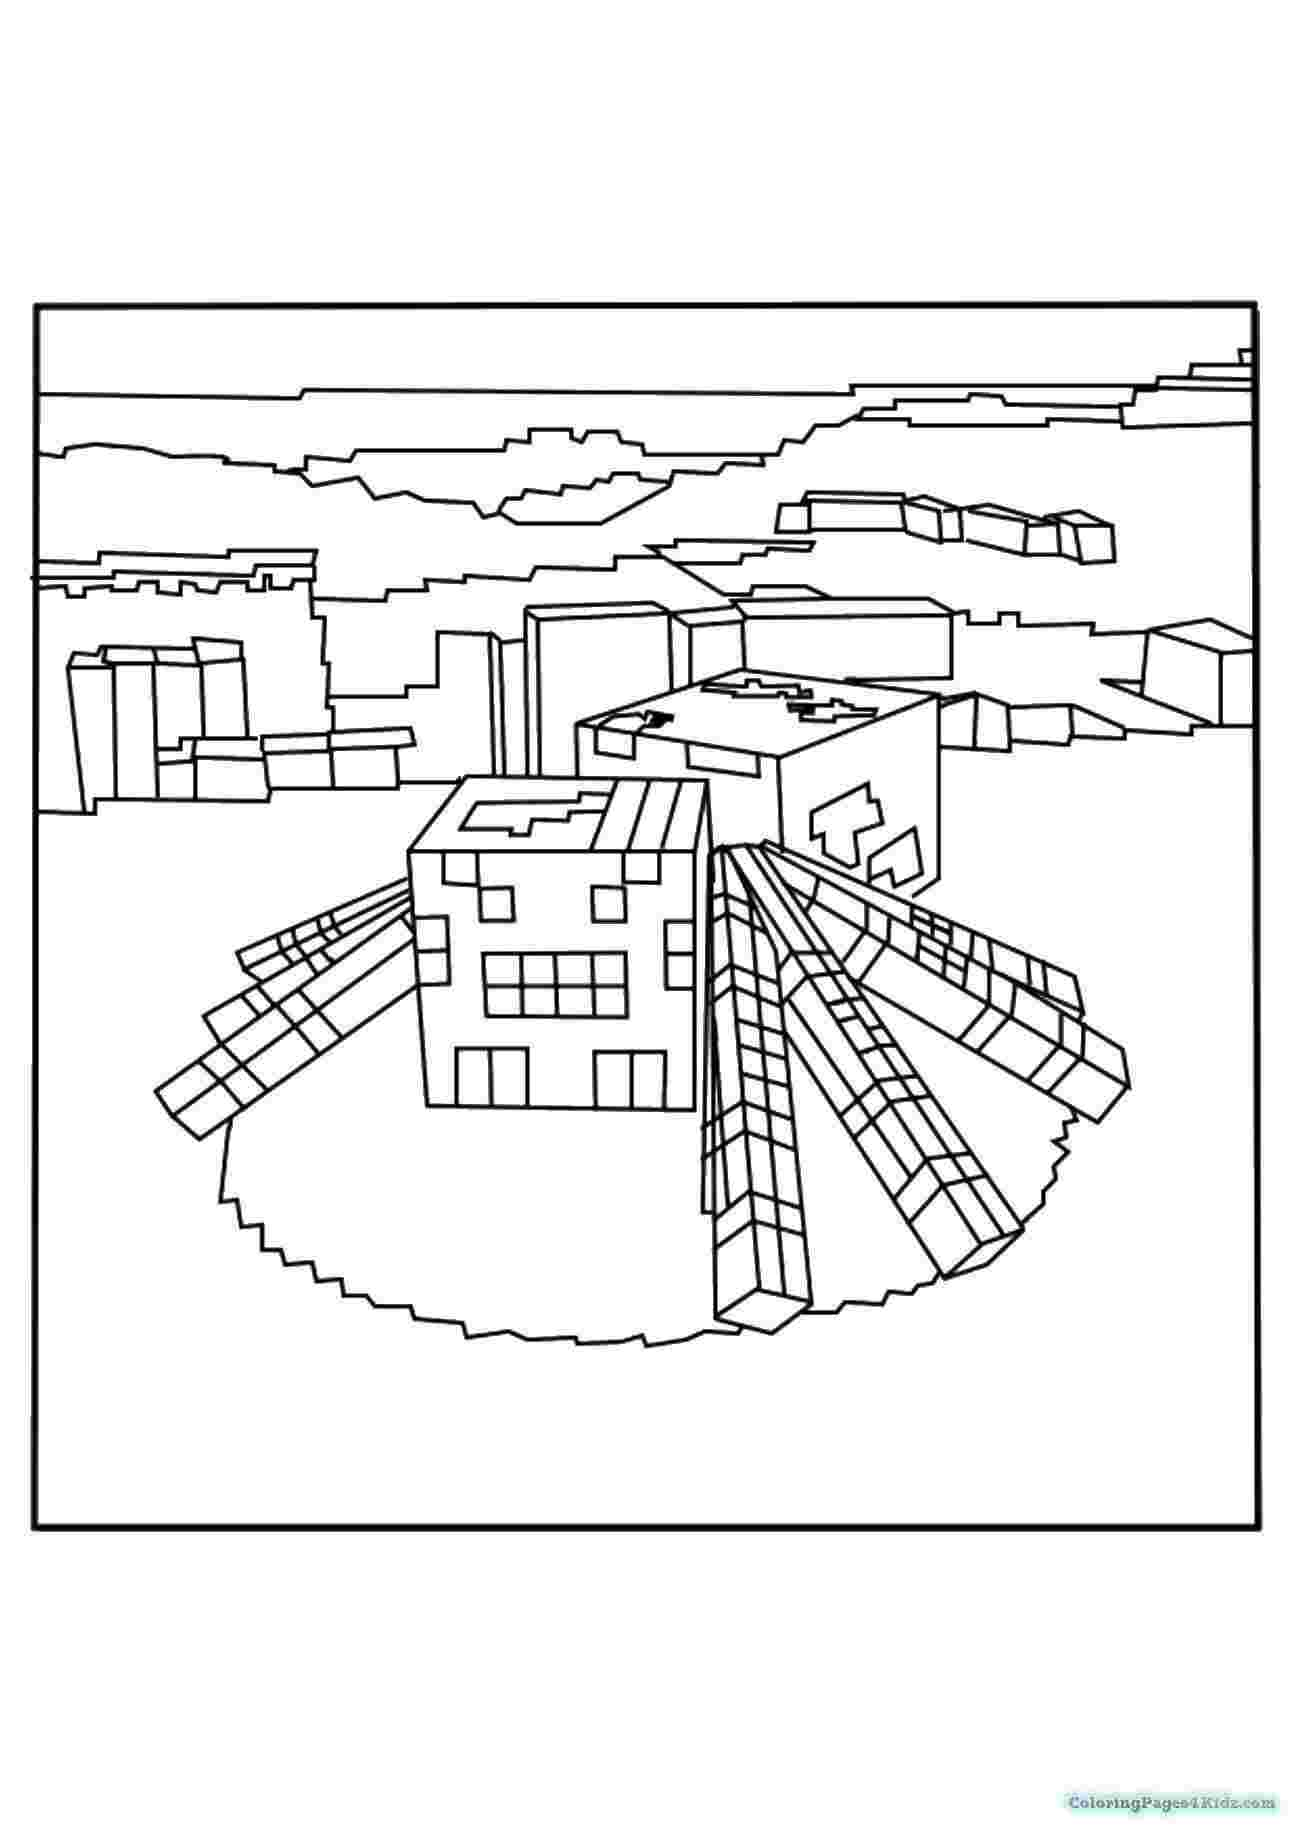 minecraft spider coloring pages minecraft coloring pages spider coloring pages for kids spider coloring minecraft pages